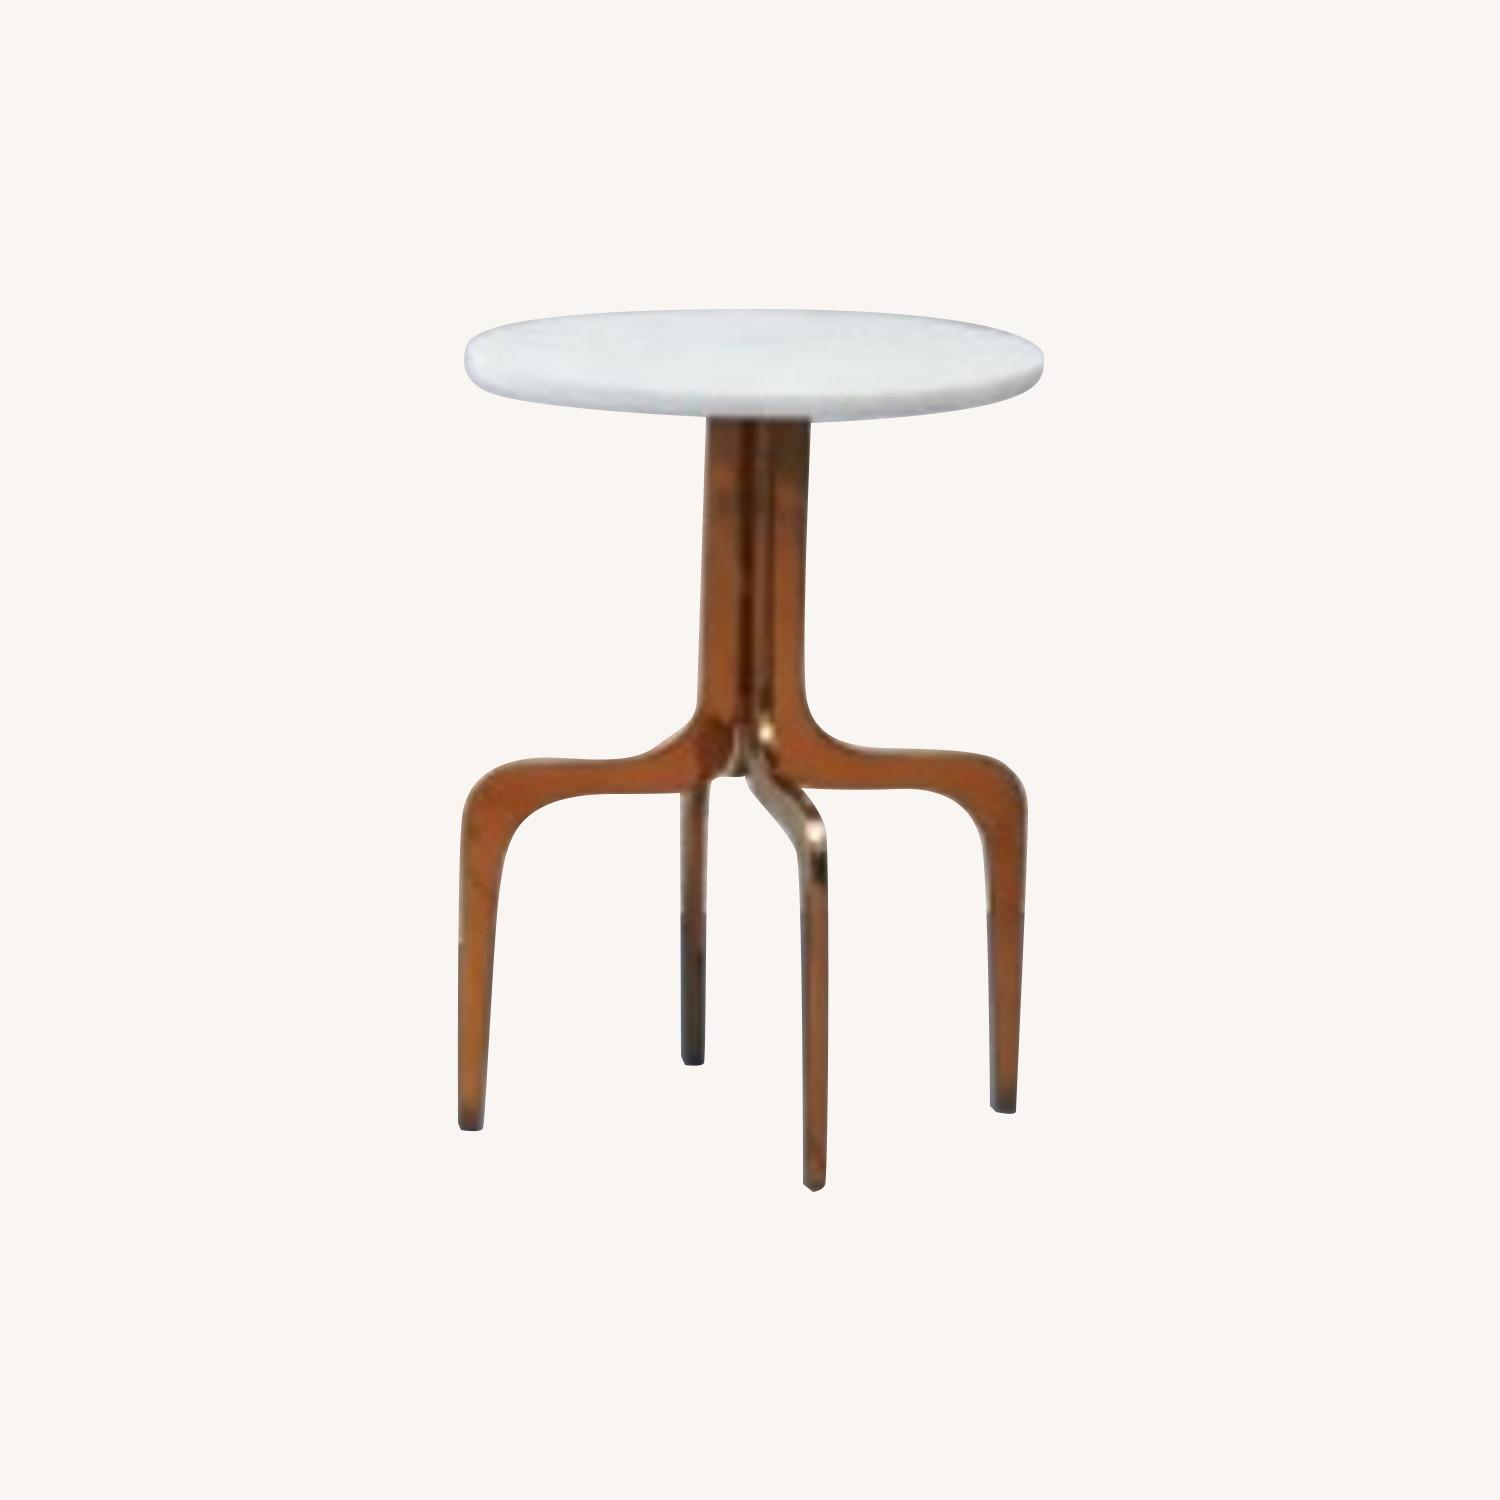 CB2 Dorset Marble side table - image-0